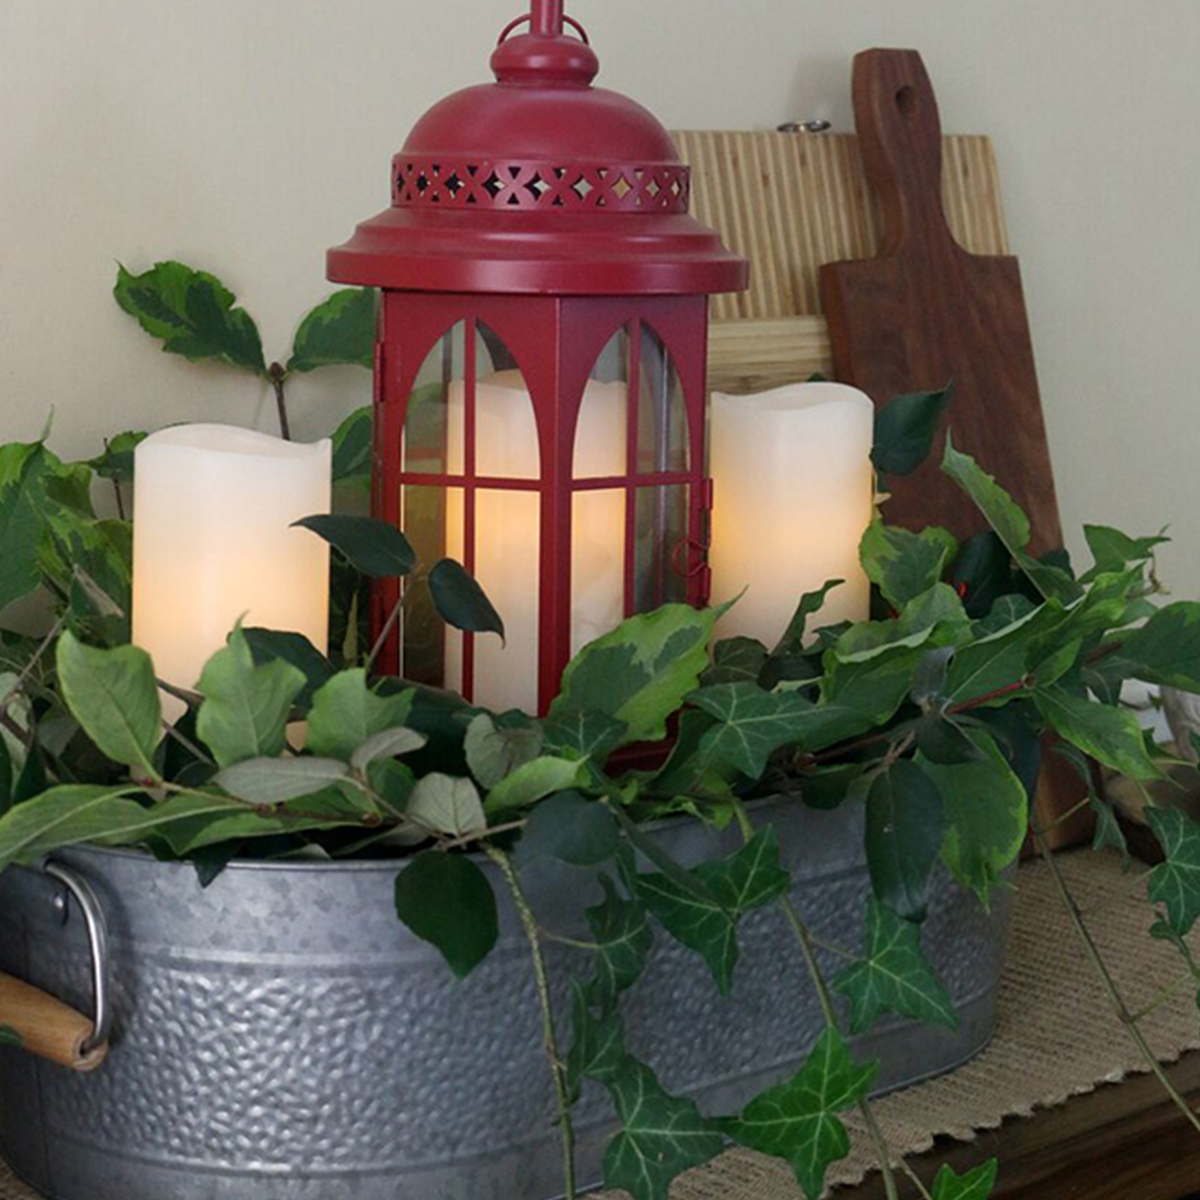 Better Homes & Gardens red lantern with LED candles photo